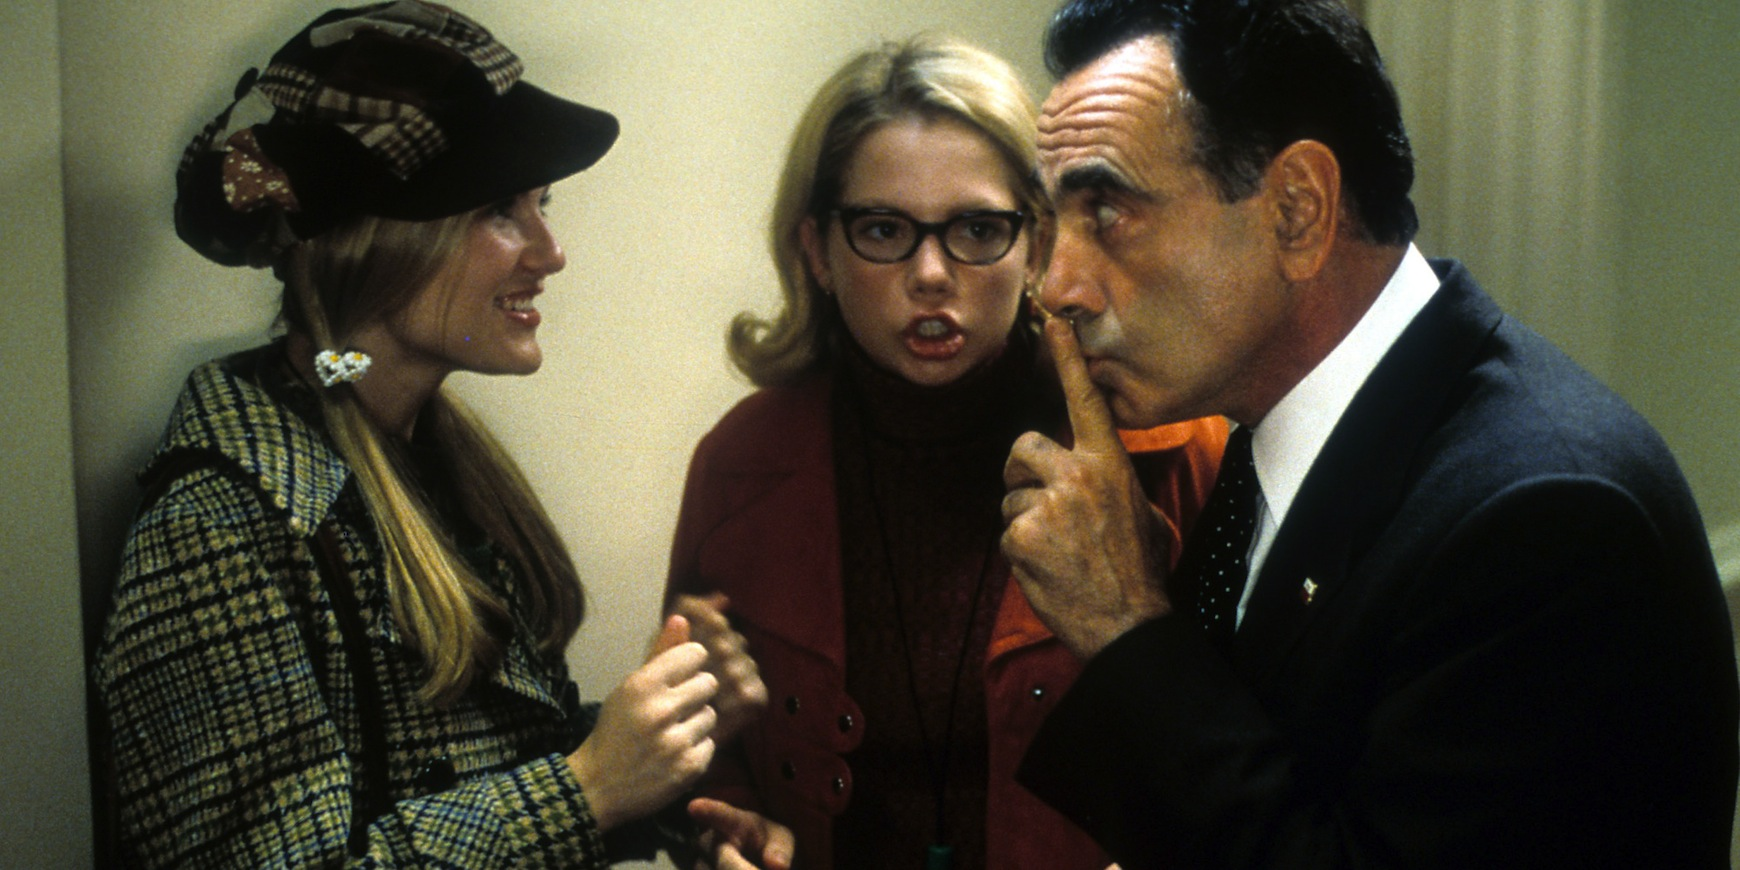 Kirsten Dunst, Michelle Williams and Dan Hedaya in a scene from the film 'Dick', 1999. (Photo by Phoenix Pictures/Getty Images)